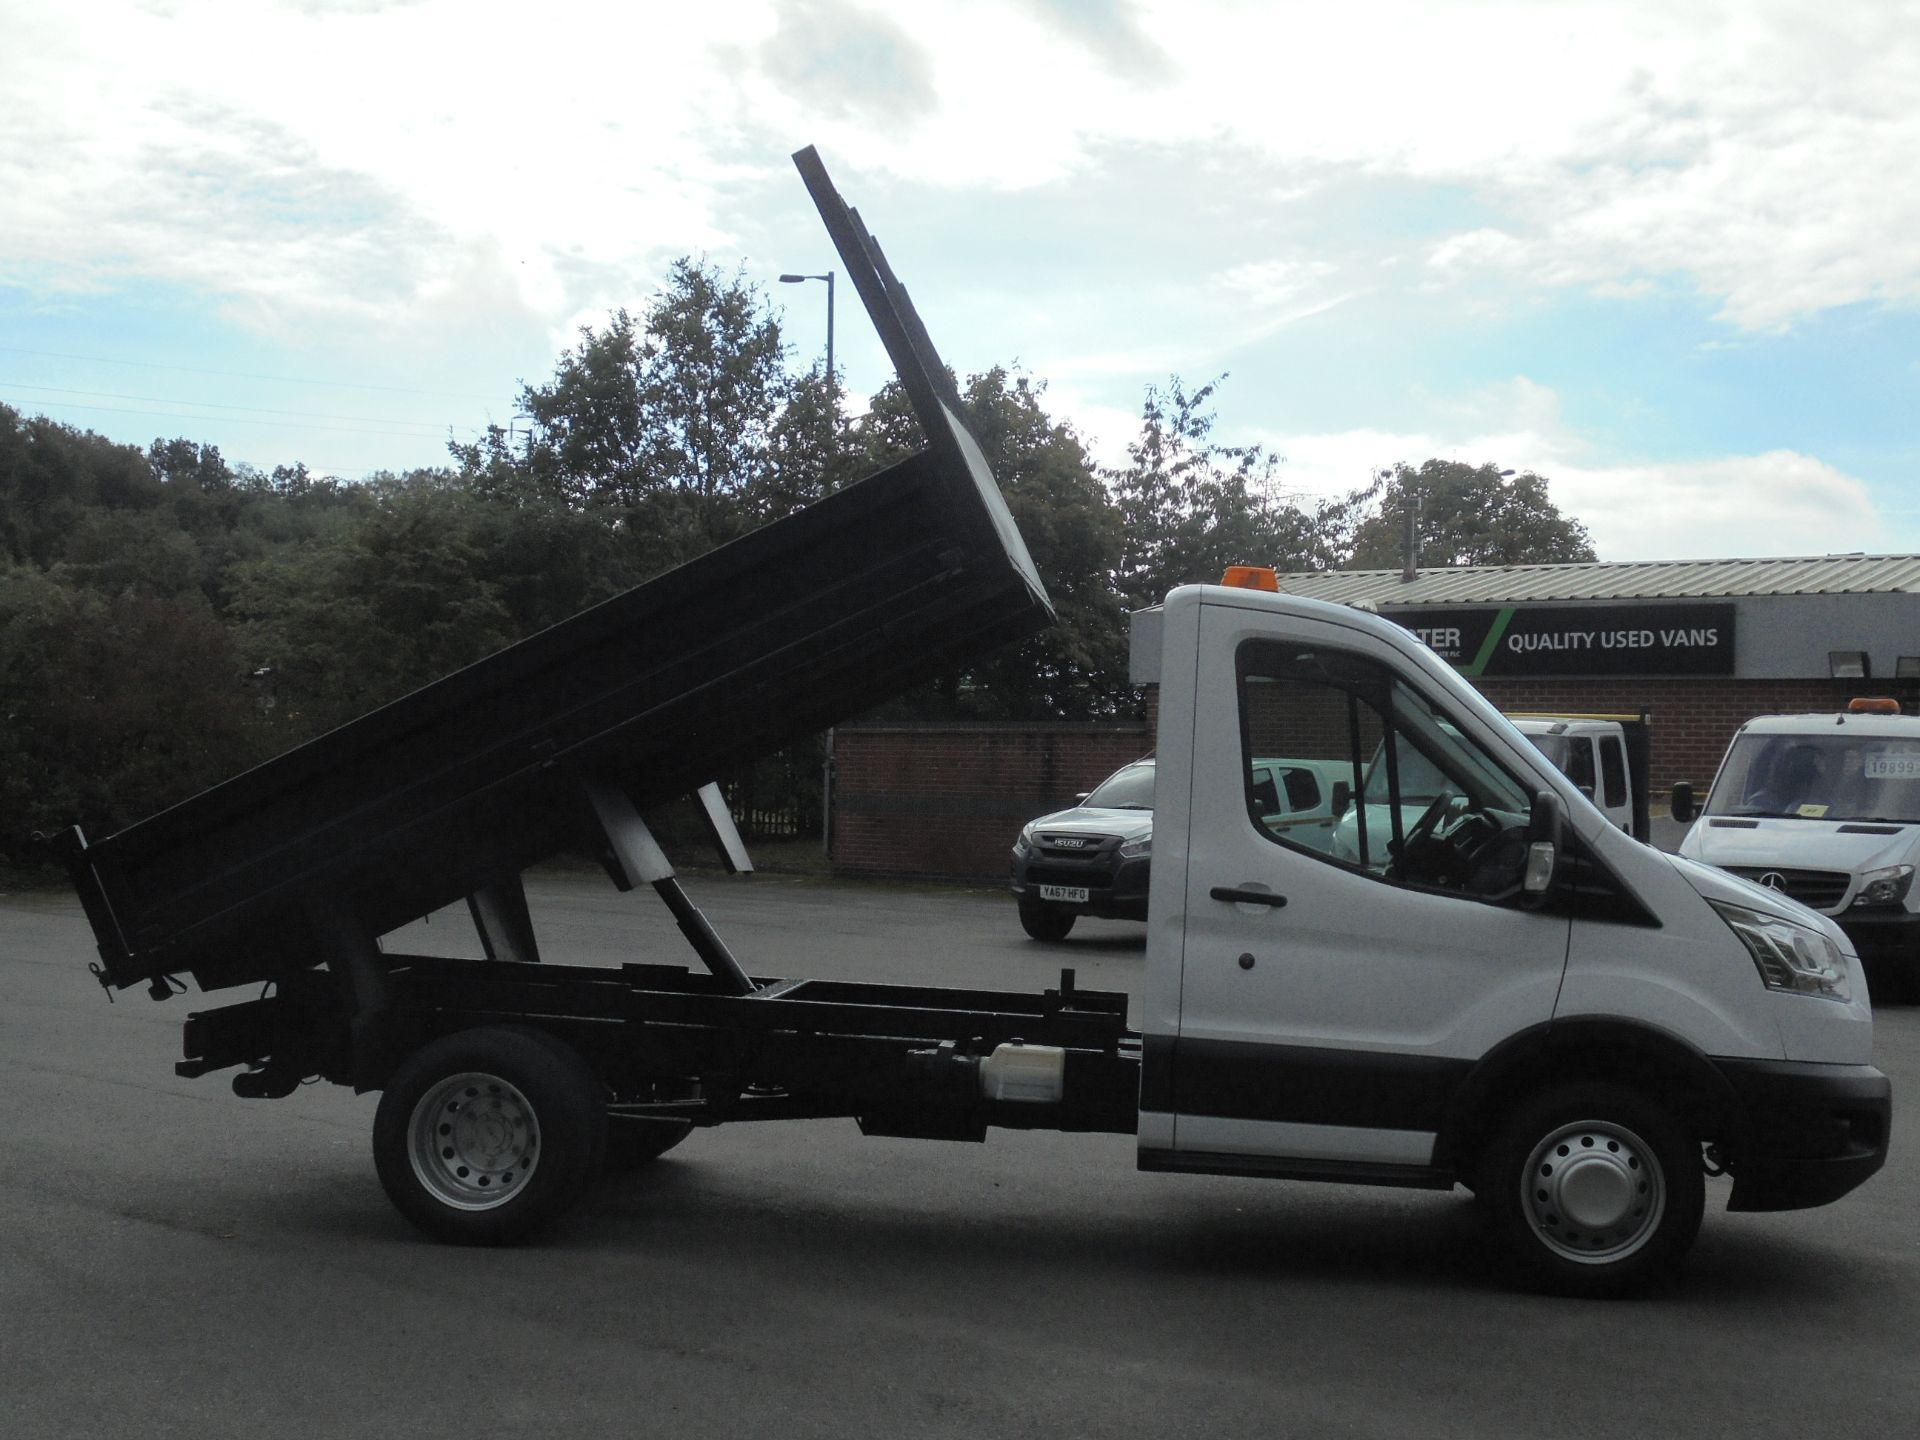 2015 Ford Transit 2.2 Tdci 125Ps Chassis Cab Tipper (FP65DJZ) Image 16